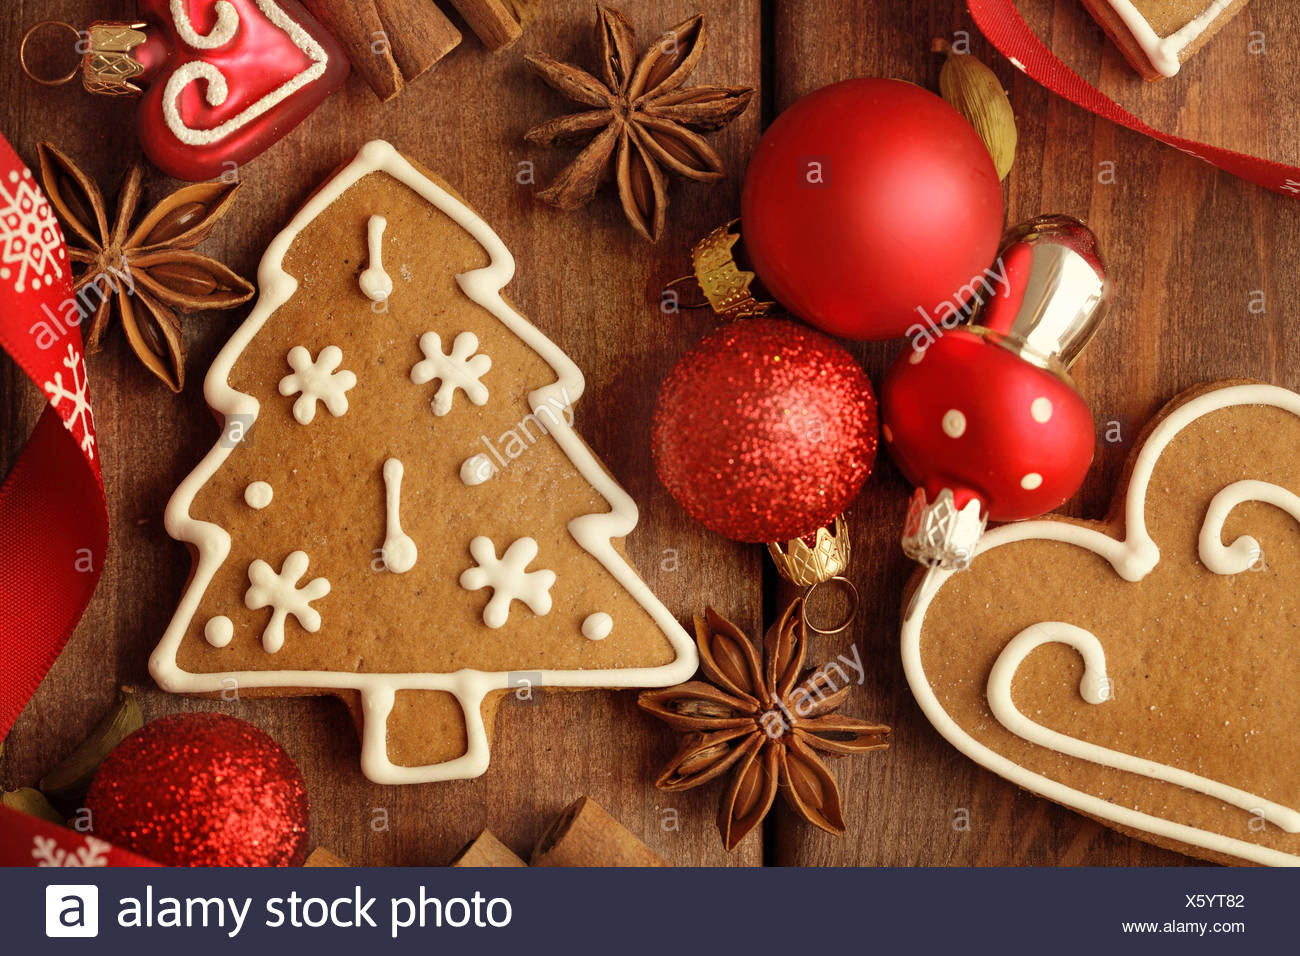 Christmas Cookies Gingerbread Christmas Tree Decorations Stock Photo Alamy